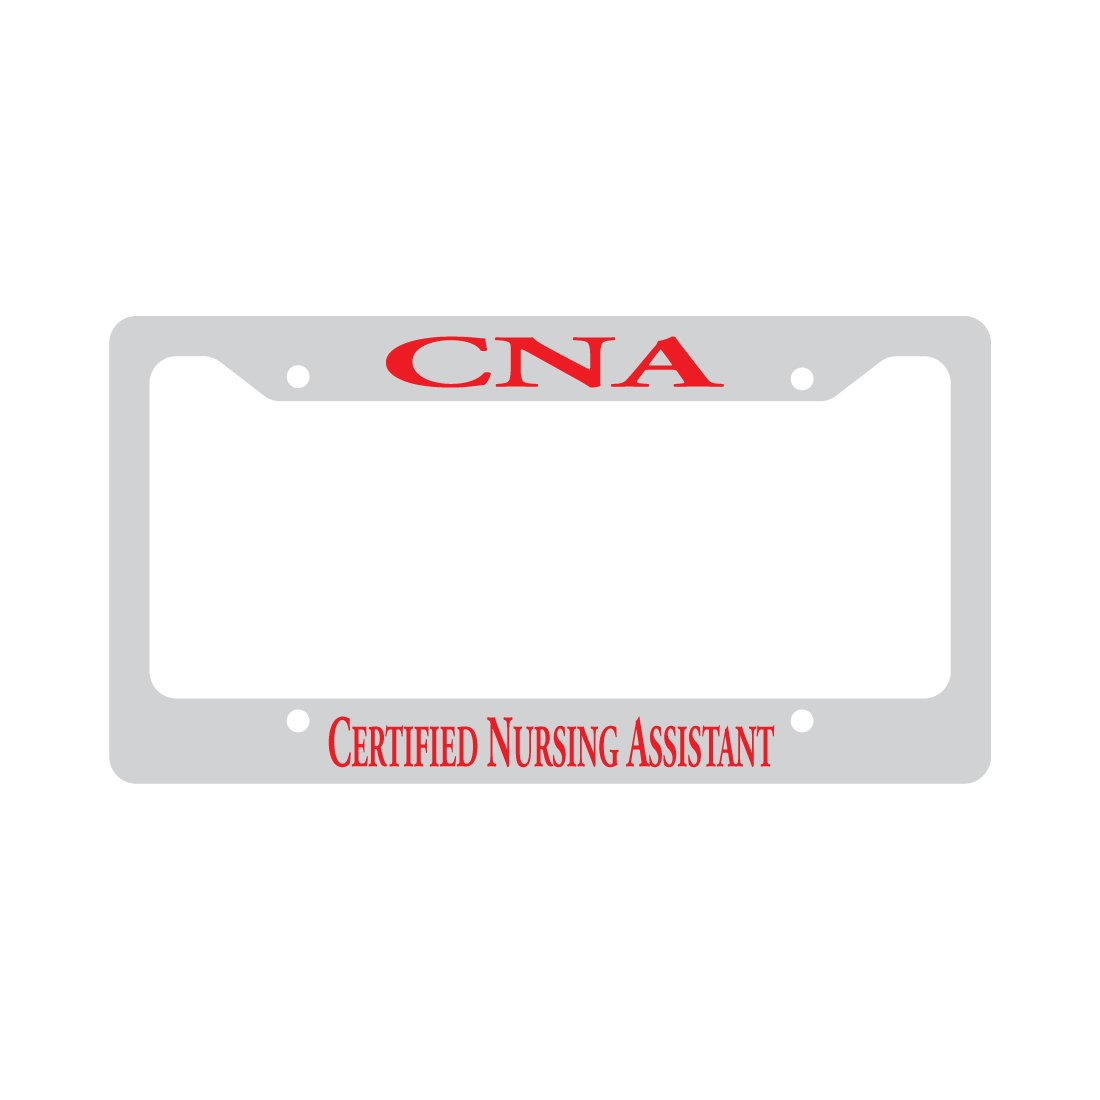 Amazon Cna Certified Nursing Assistant Funny Car License Plate